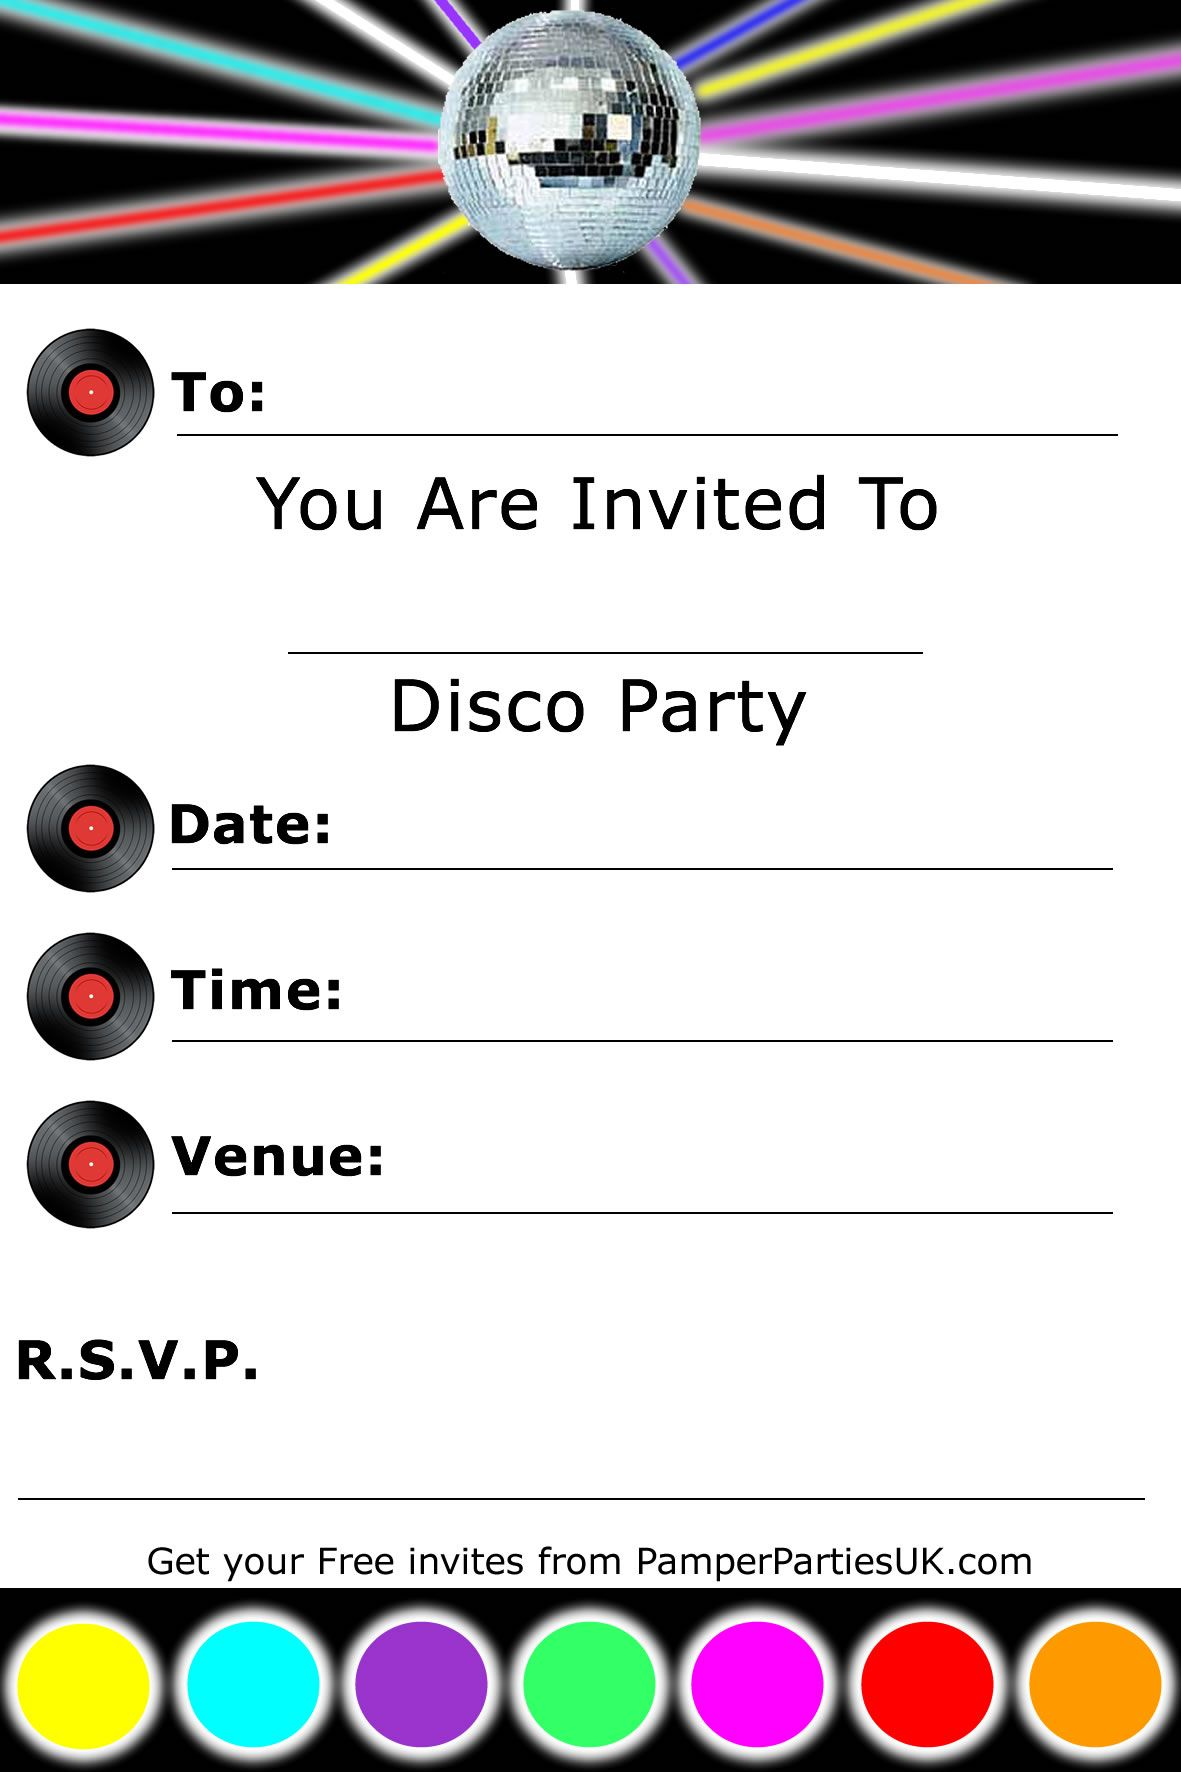 Invitations | Free Disco Party Invitations - Disco Invites | Nana ...